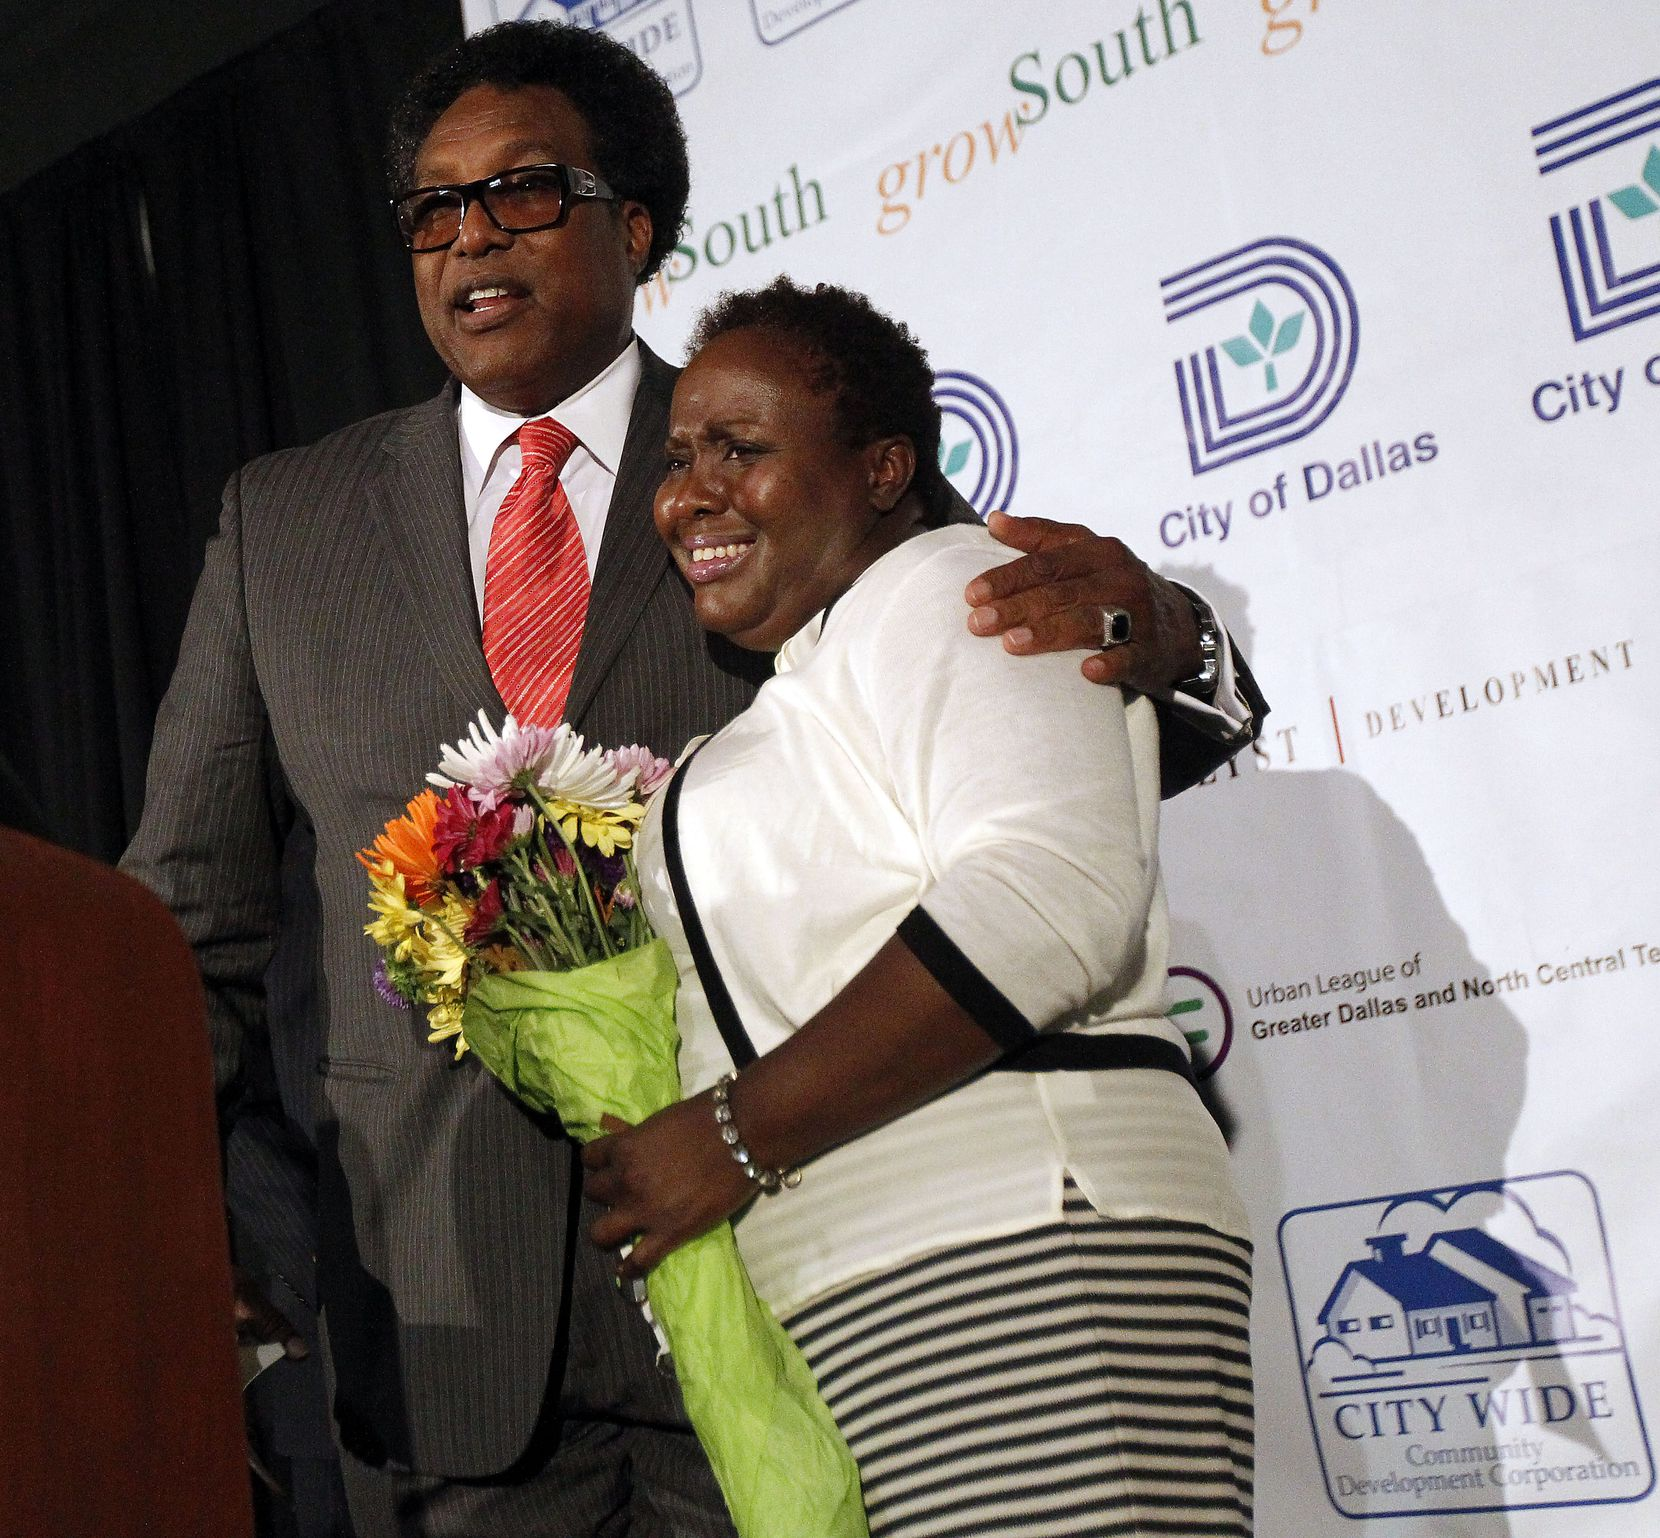 Dwaine Caraway, left, and Carolyn Davis in 2014. The two former Dallas City Council members have been accused of taking numerous bribes from affordable housing developers, including a new case that was filed this week. Davis died in a car crash last year and Caraway is in prison.